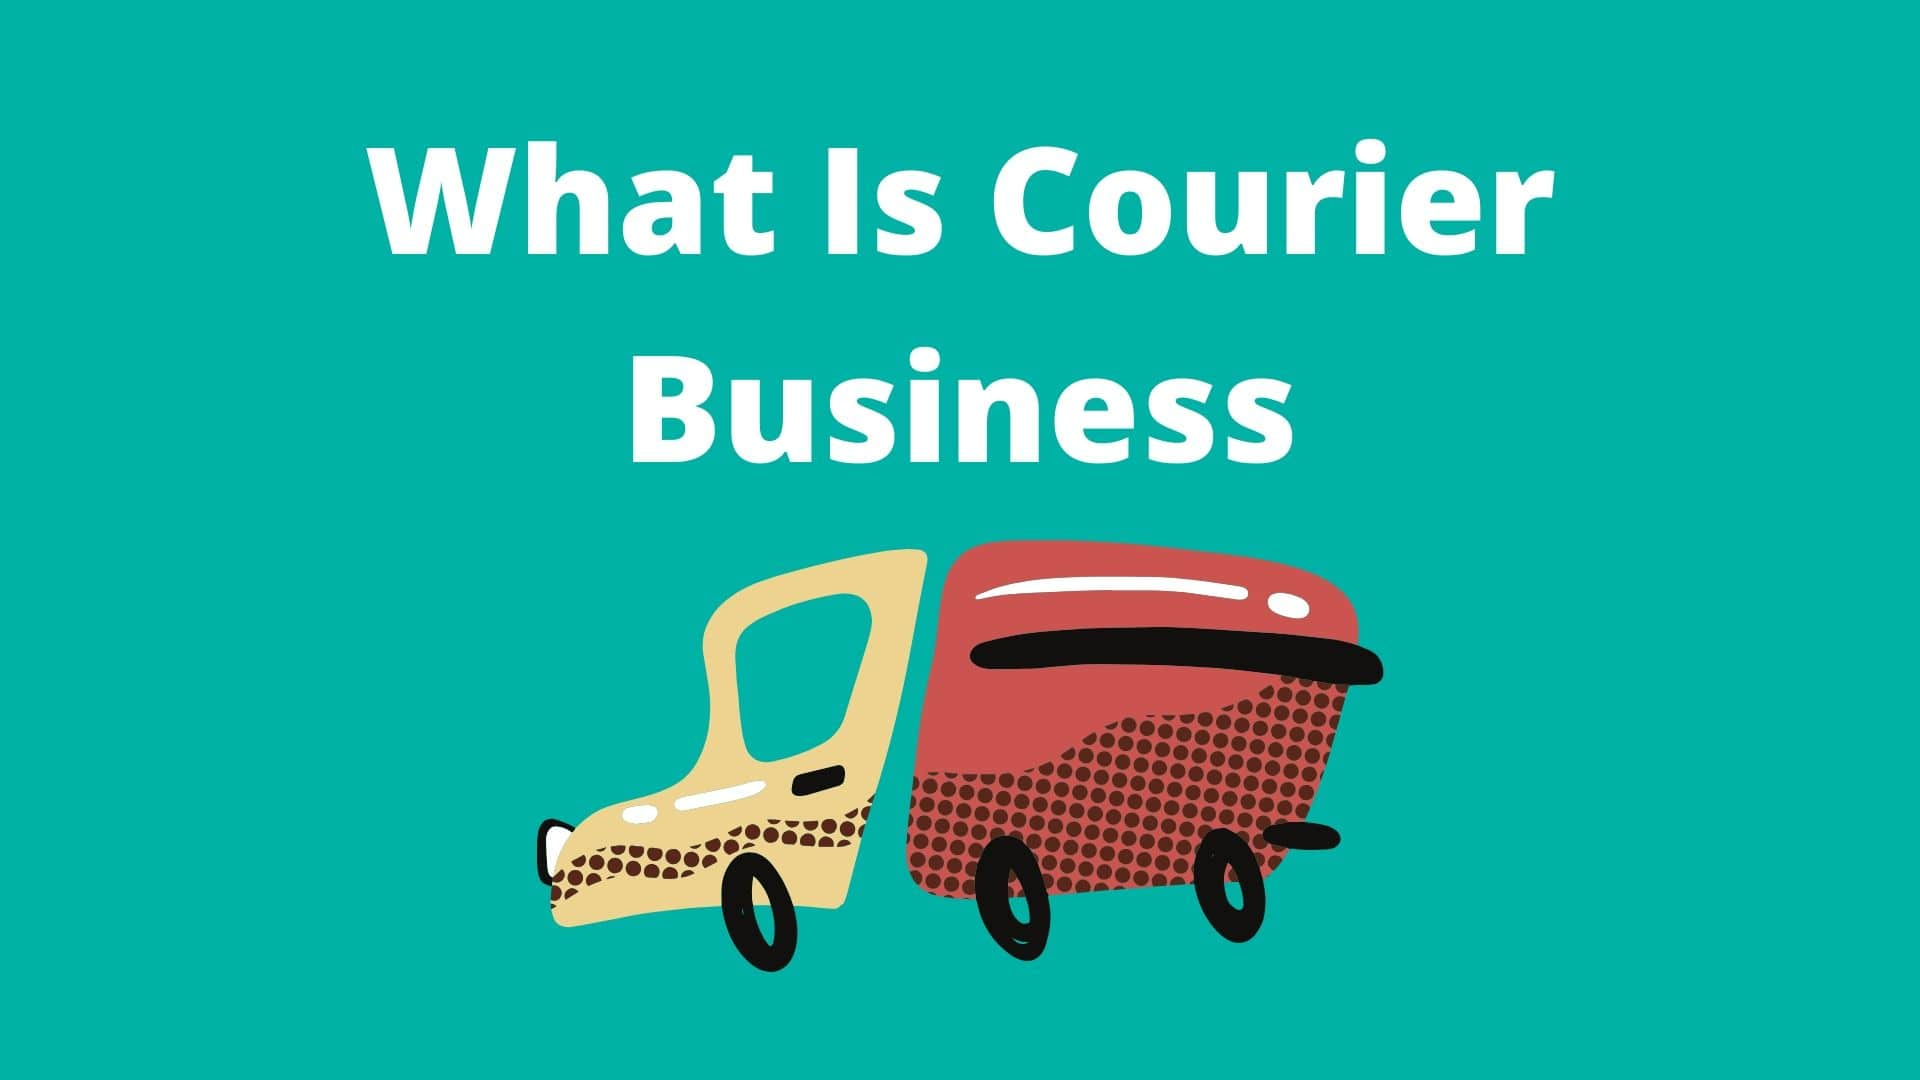 What Is Courier Business